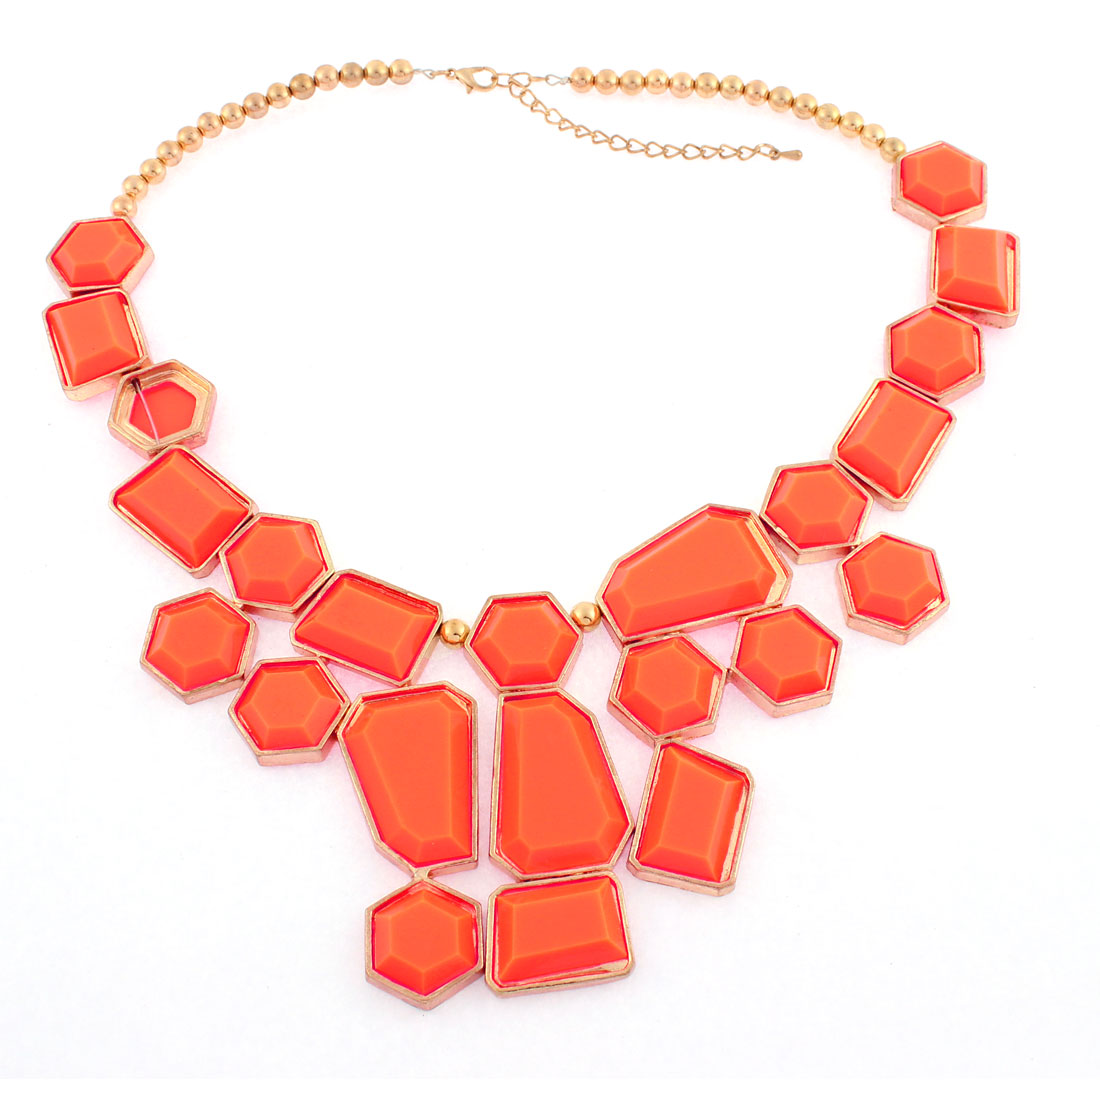 Orange Faceted Drops Gold Tone Chain Necklace Choker Jewelry Gift